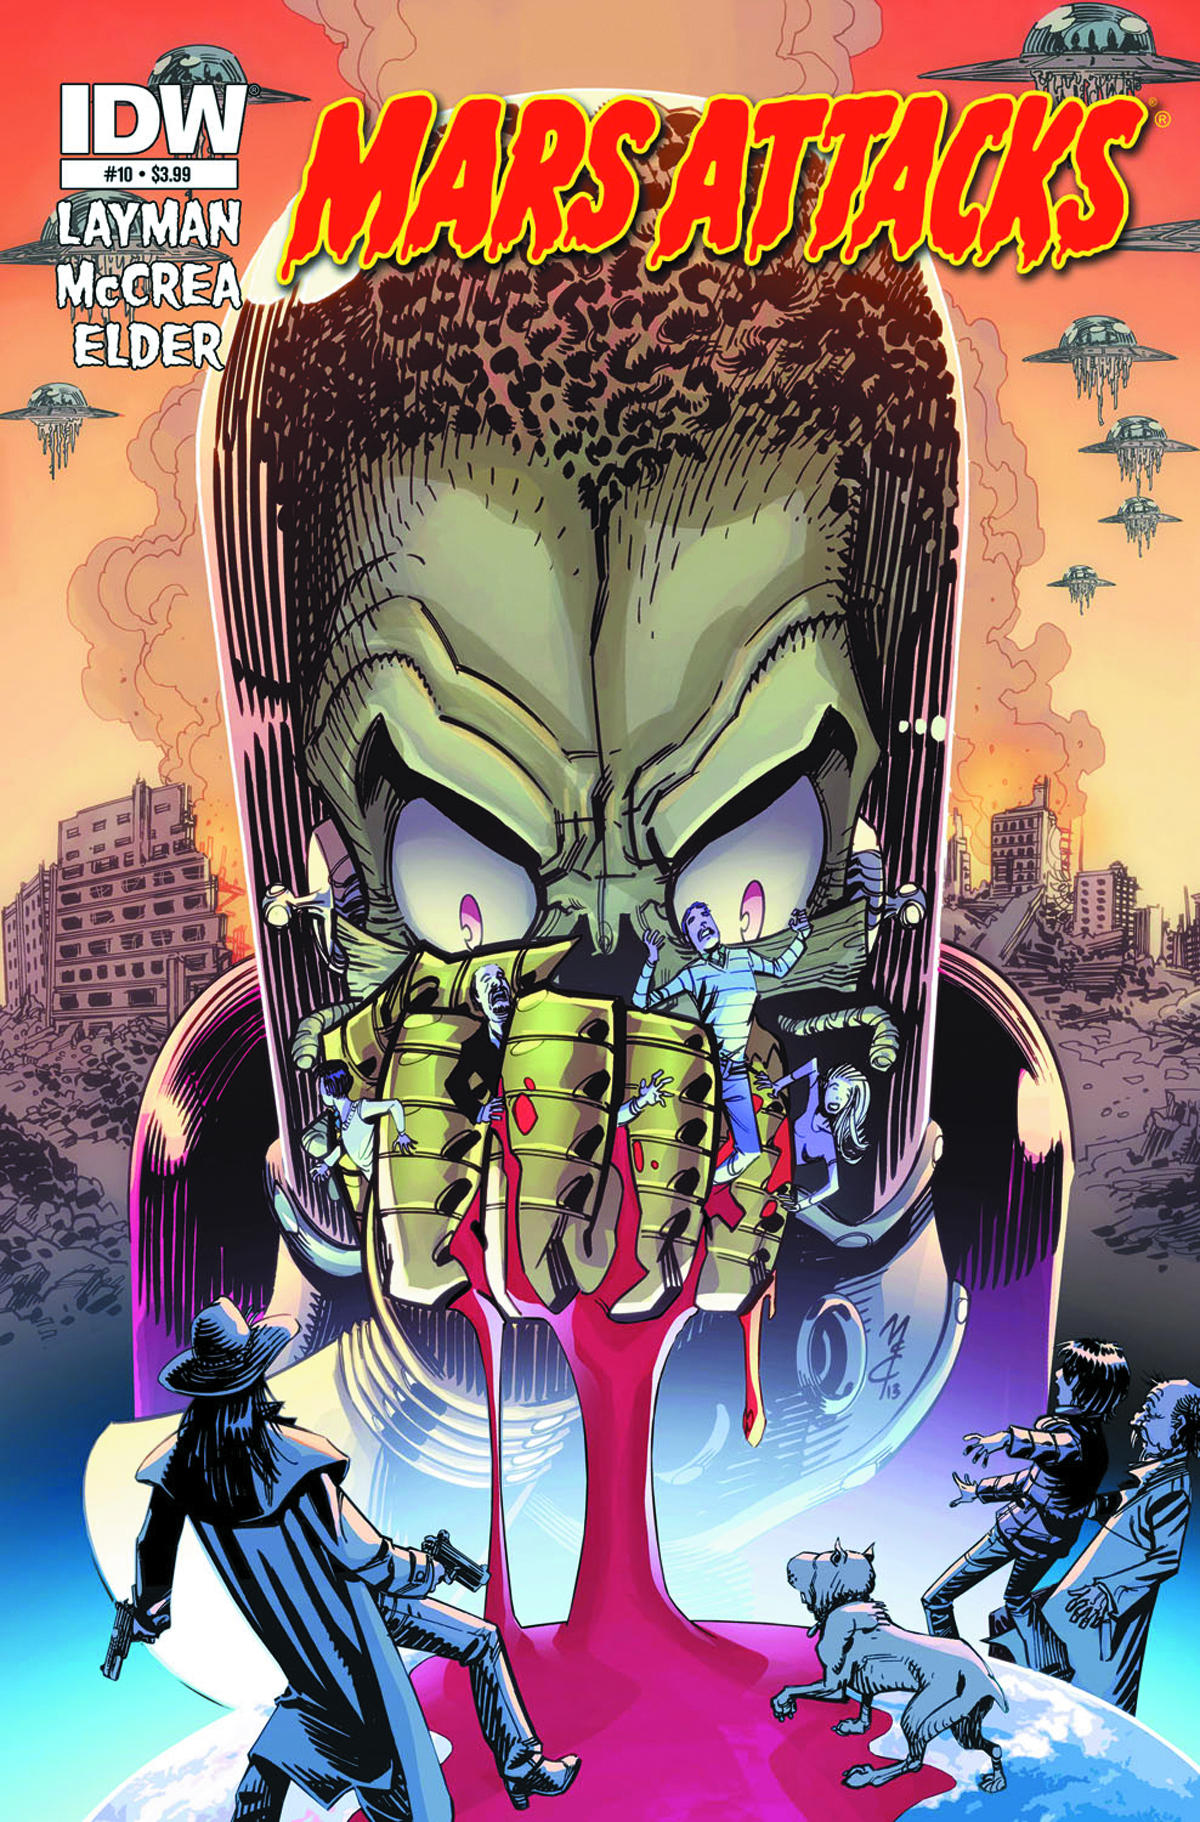 MARS ATTACKS #10